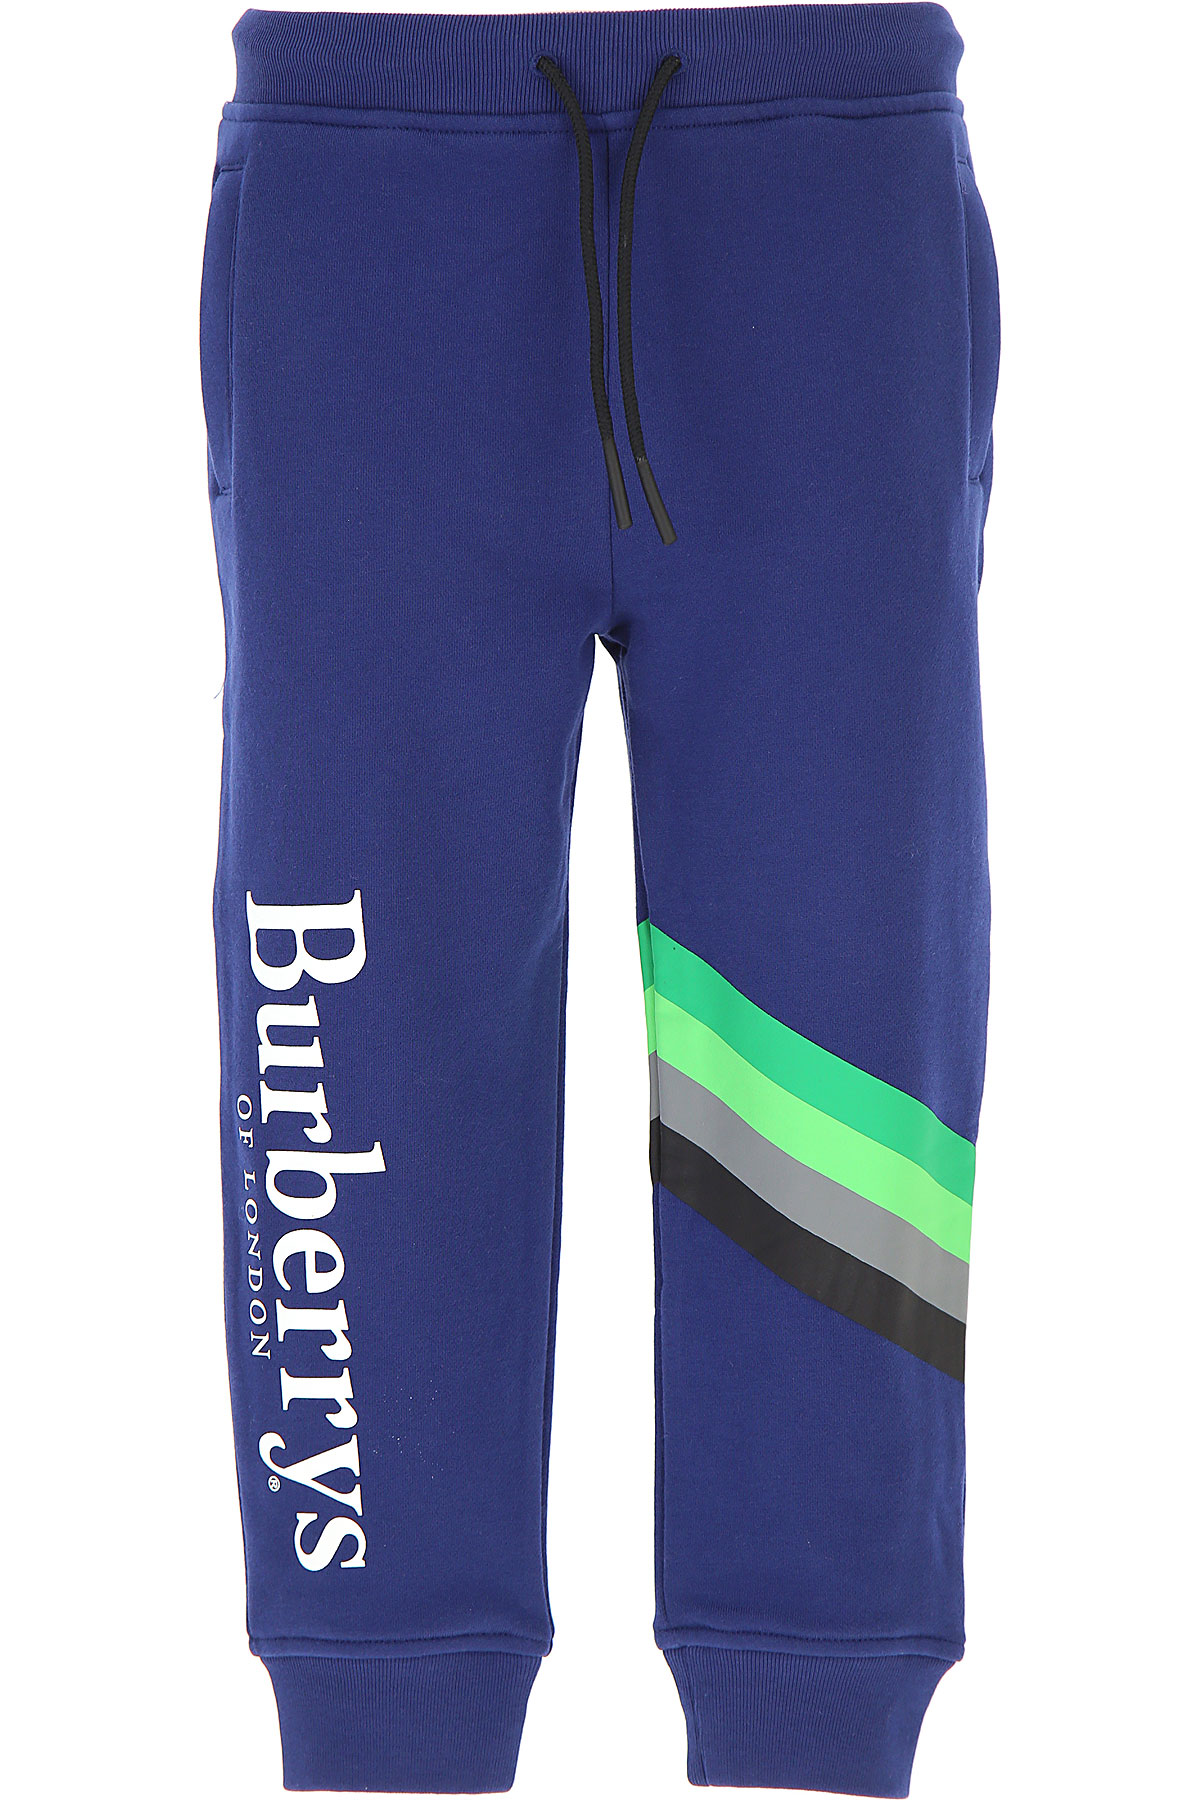 Image of Burberry Kids Sweatpants for Boys, Canvas Blue, Cotton, 2017, 10Y 14Y 6Y 8Y